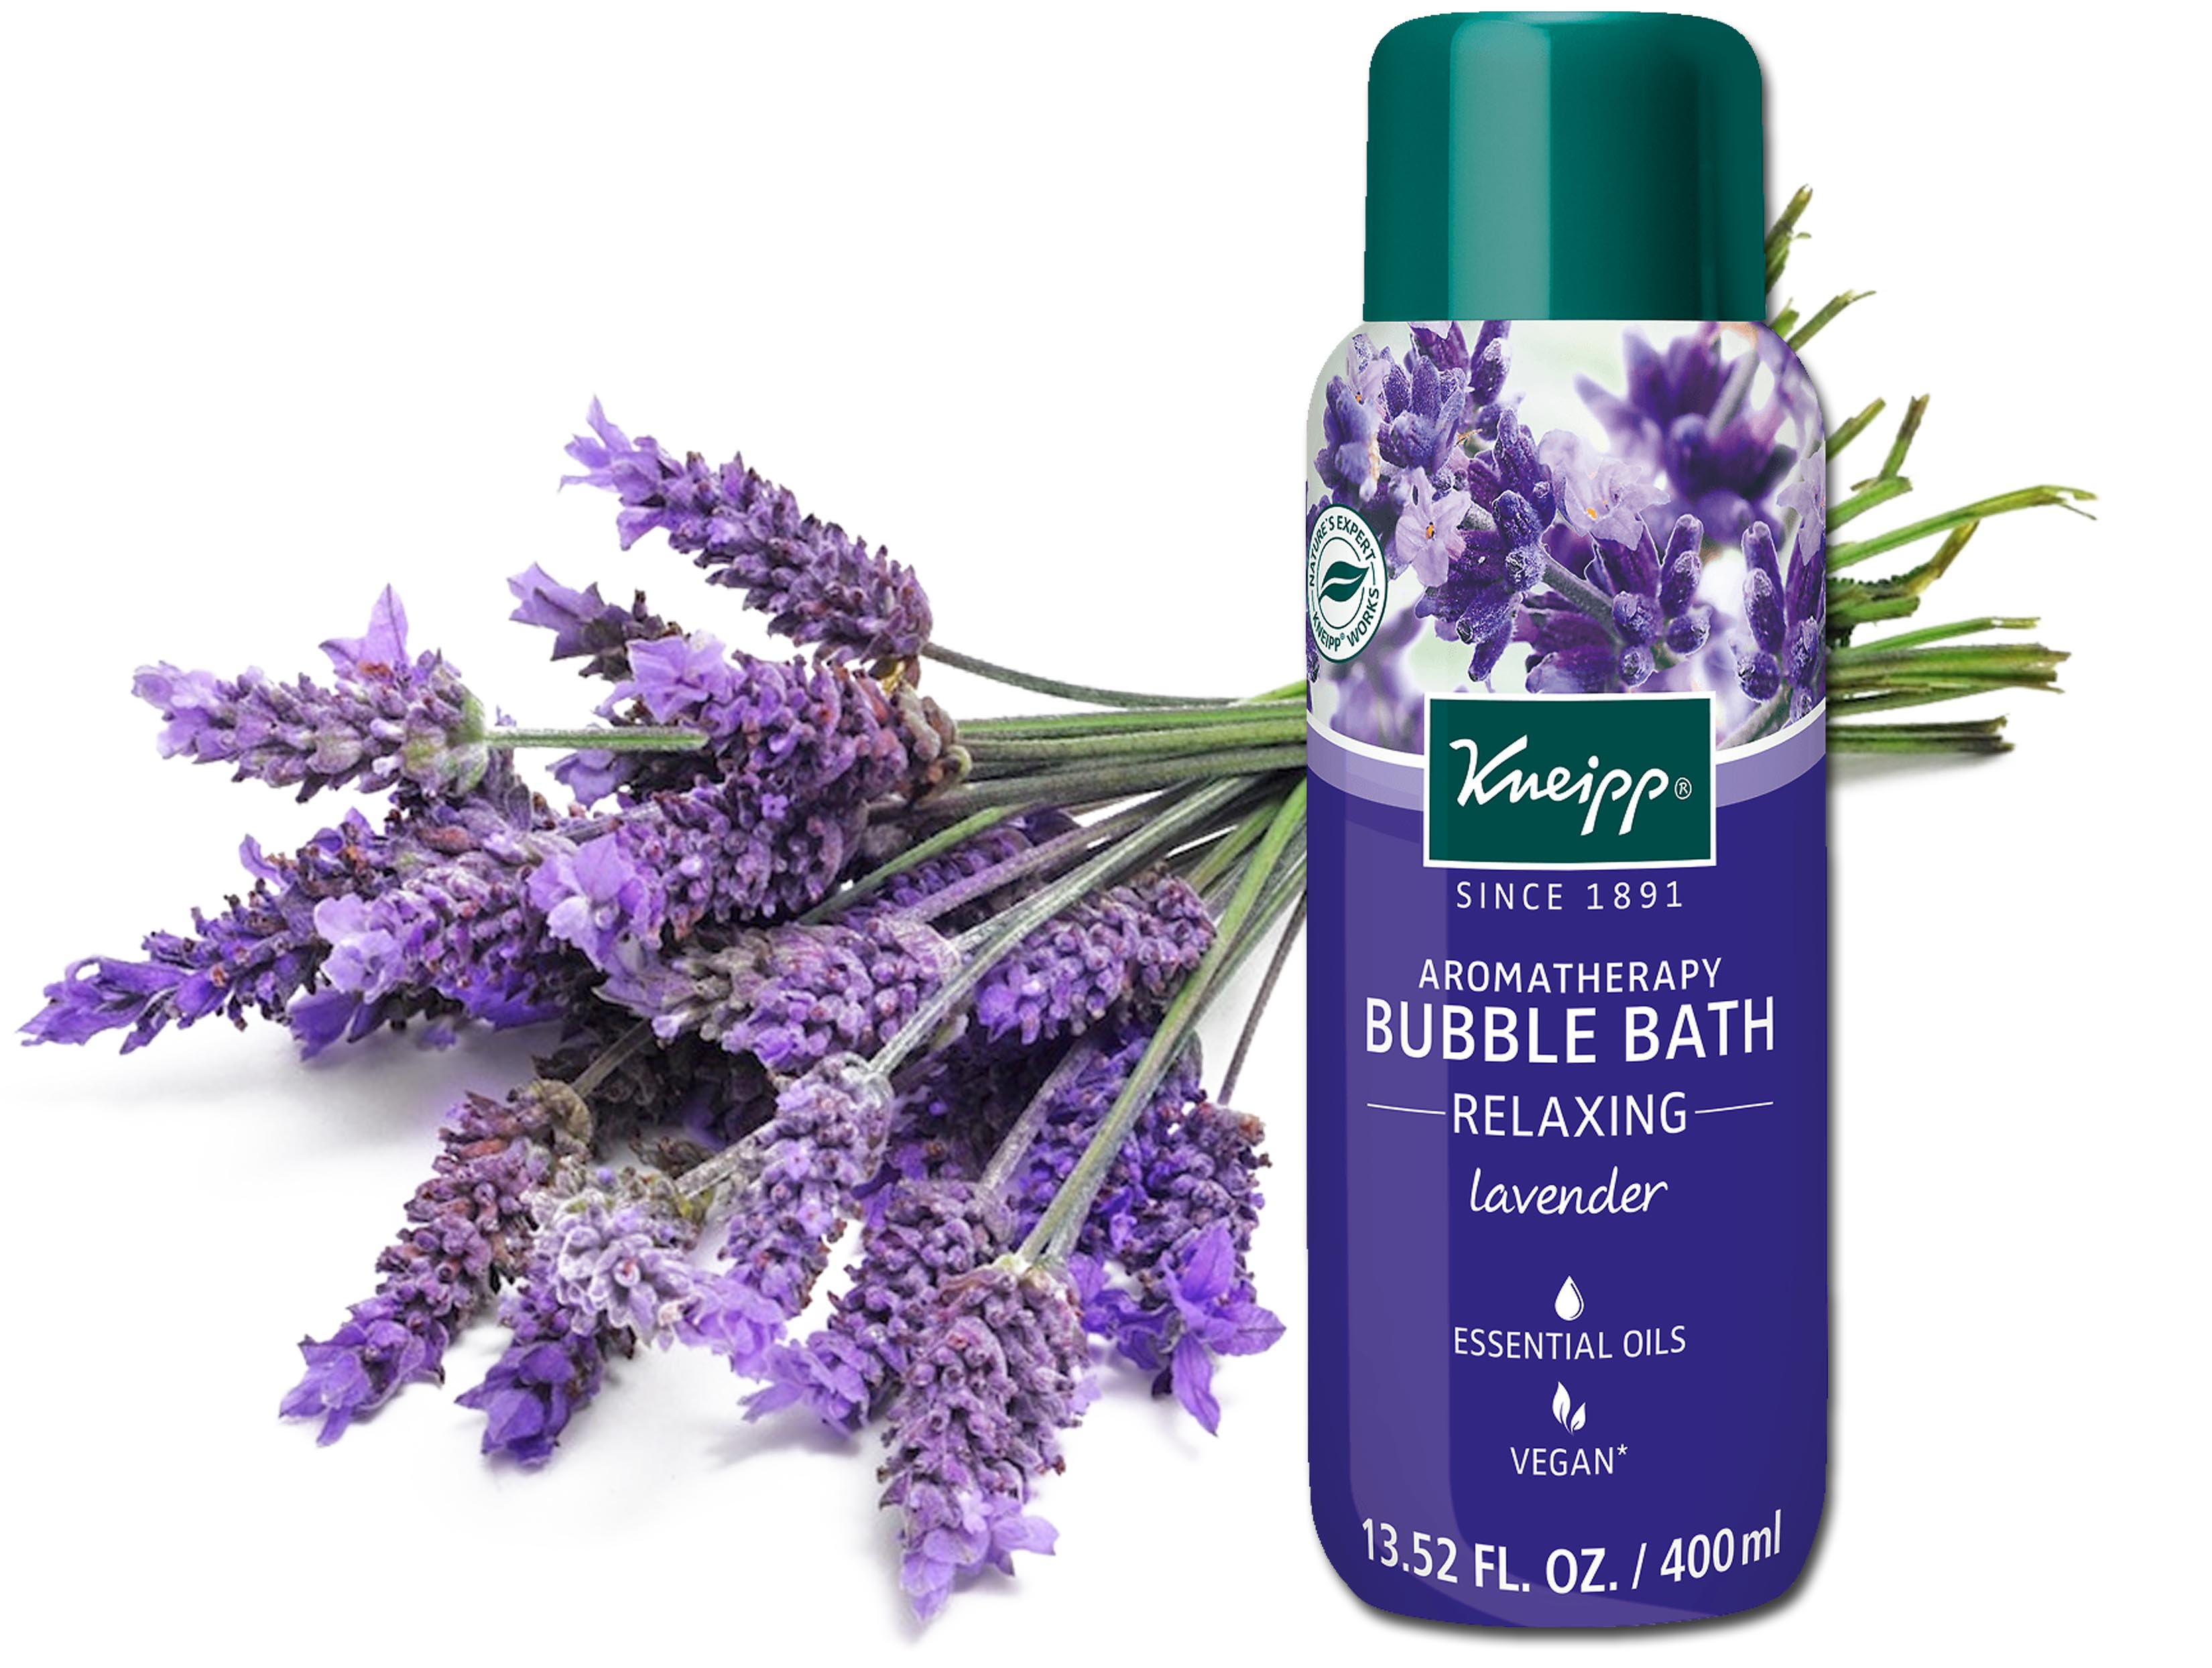 kneipp lavender bubble bath